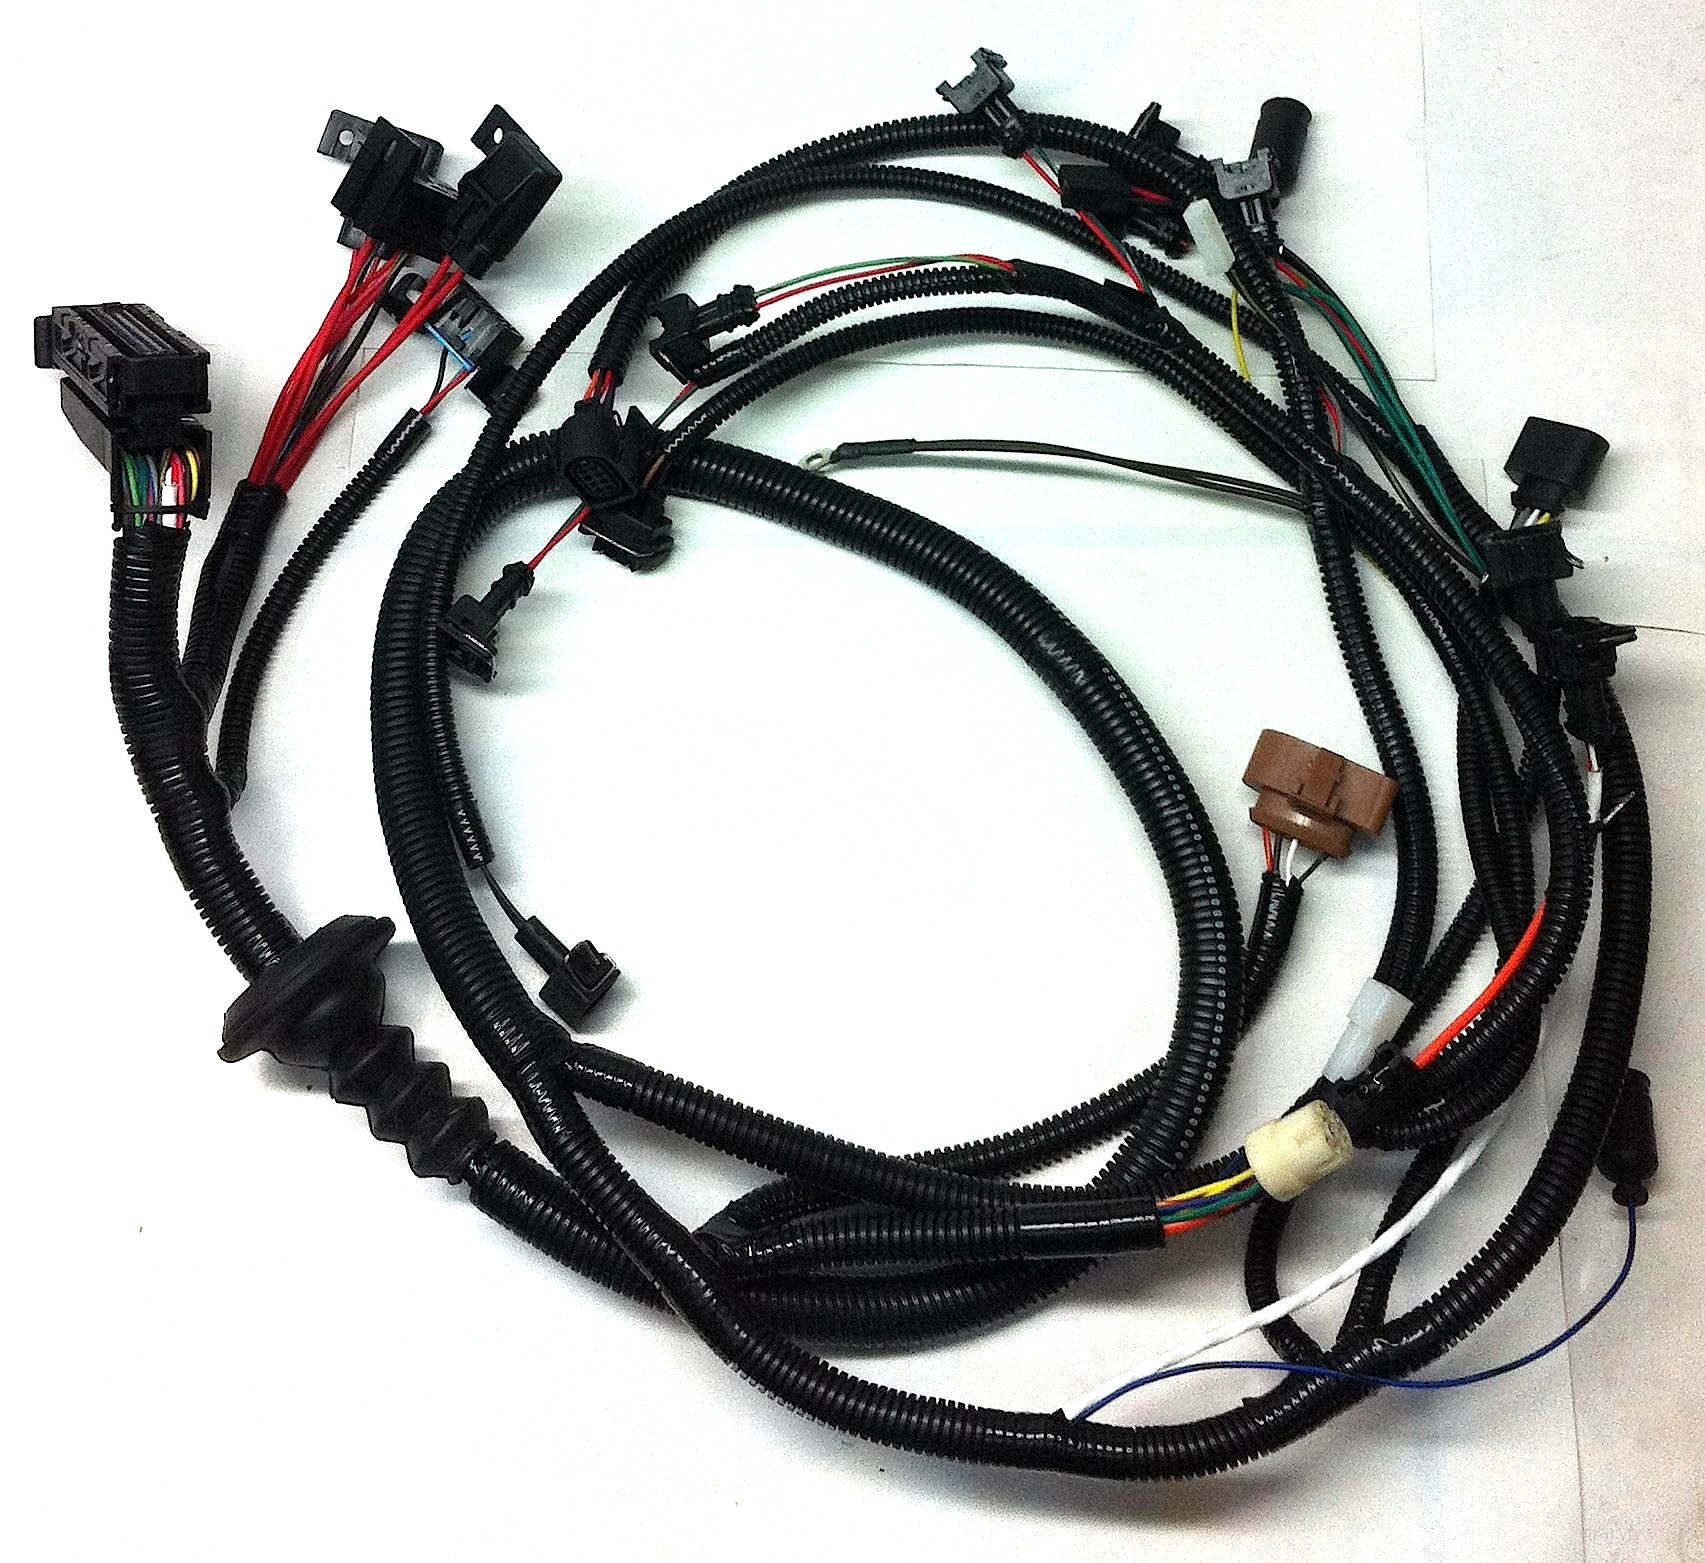 wiring help d16y5 into dx hatch. - honda-tech - honda ... about nissan x trail 2007 iso wiring harness adaptor cable connector cable harness